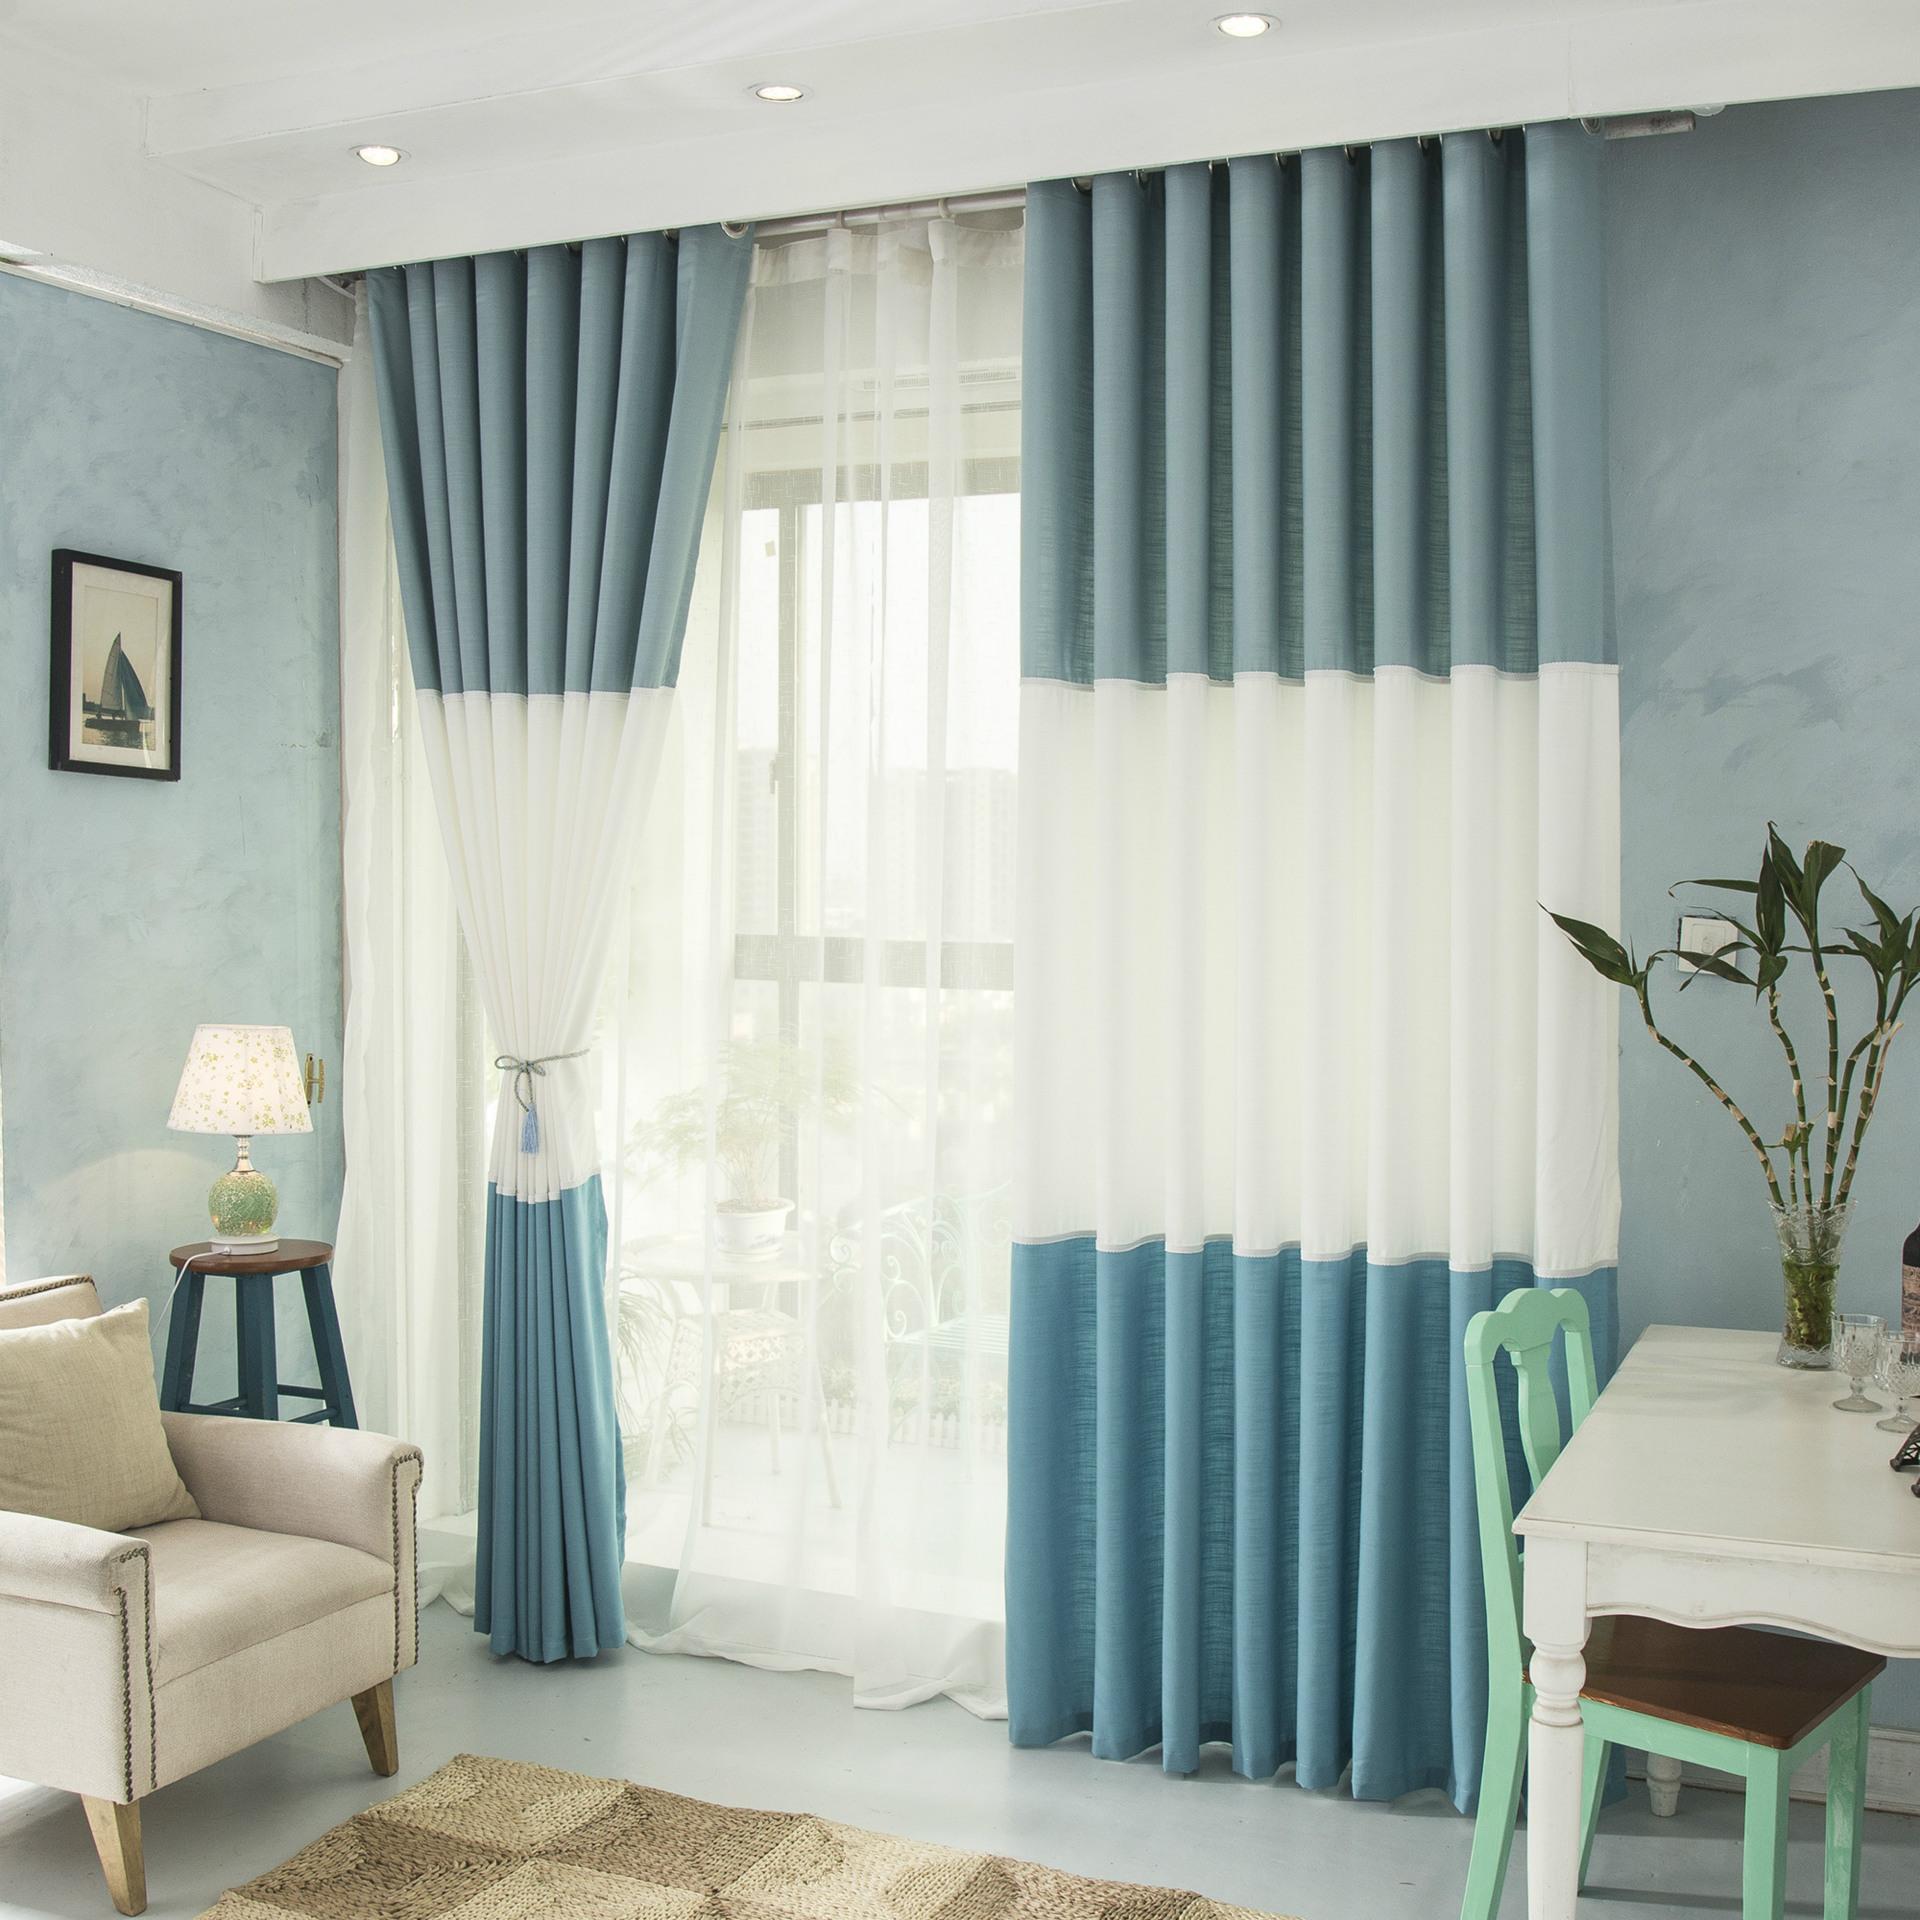 Curtains For Living Dining Room Bedroom Curtain Cloth Cotton Stitching Small Fresh Shade Half Finished Blinds E